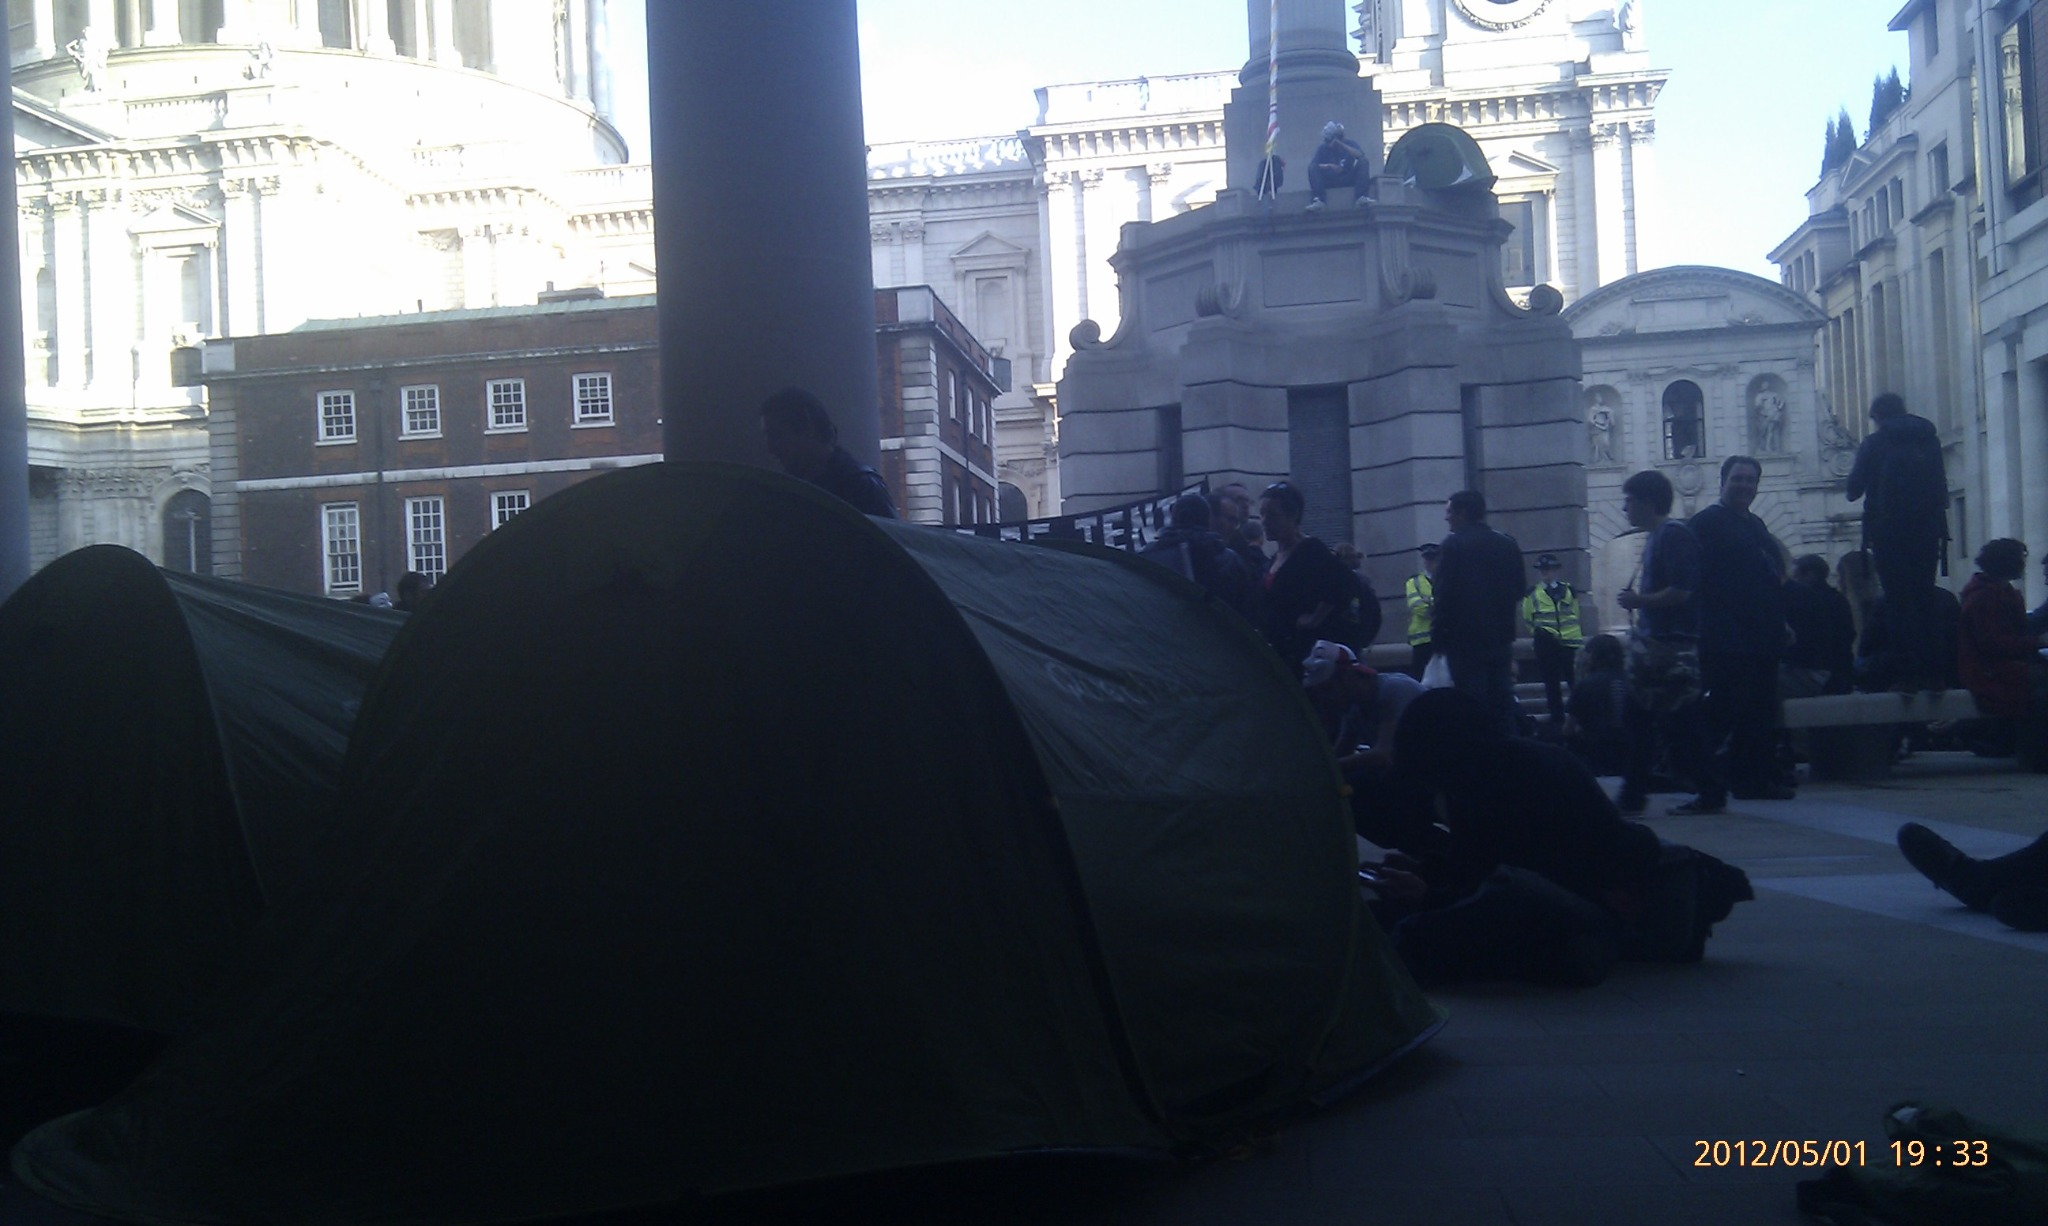 London Stock Exchange finally occupied! Come down! Bring a tent! #ows #mayday #occupymay http://t.co/iSPAl16h